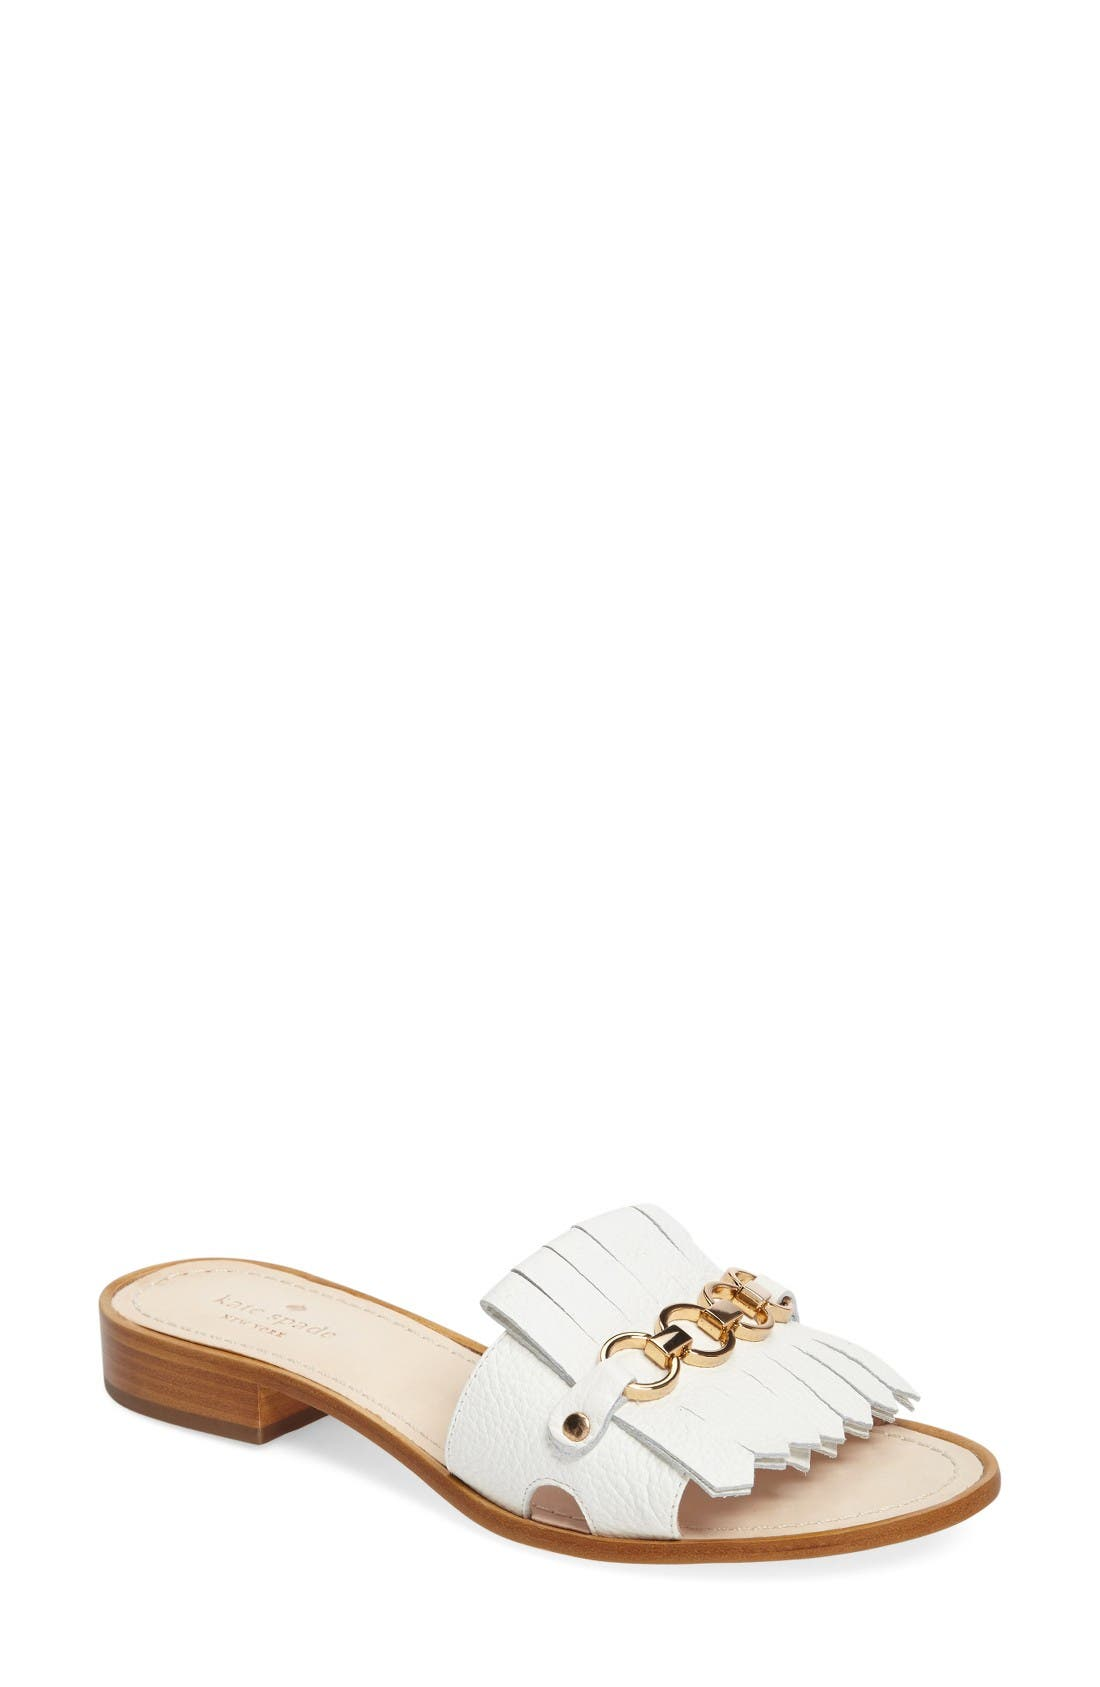 kate spade new york brie slide sandal (Women)